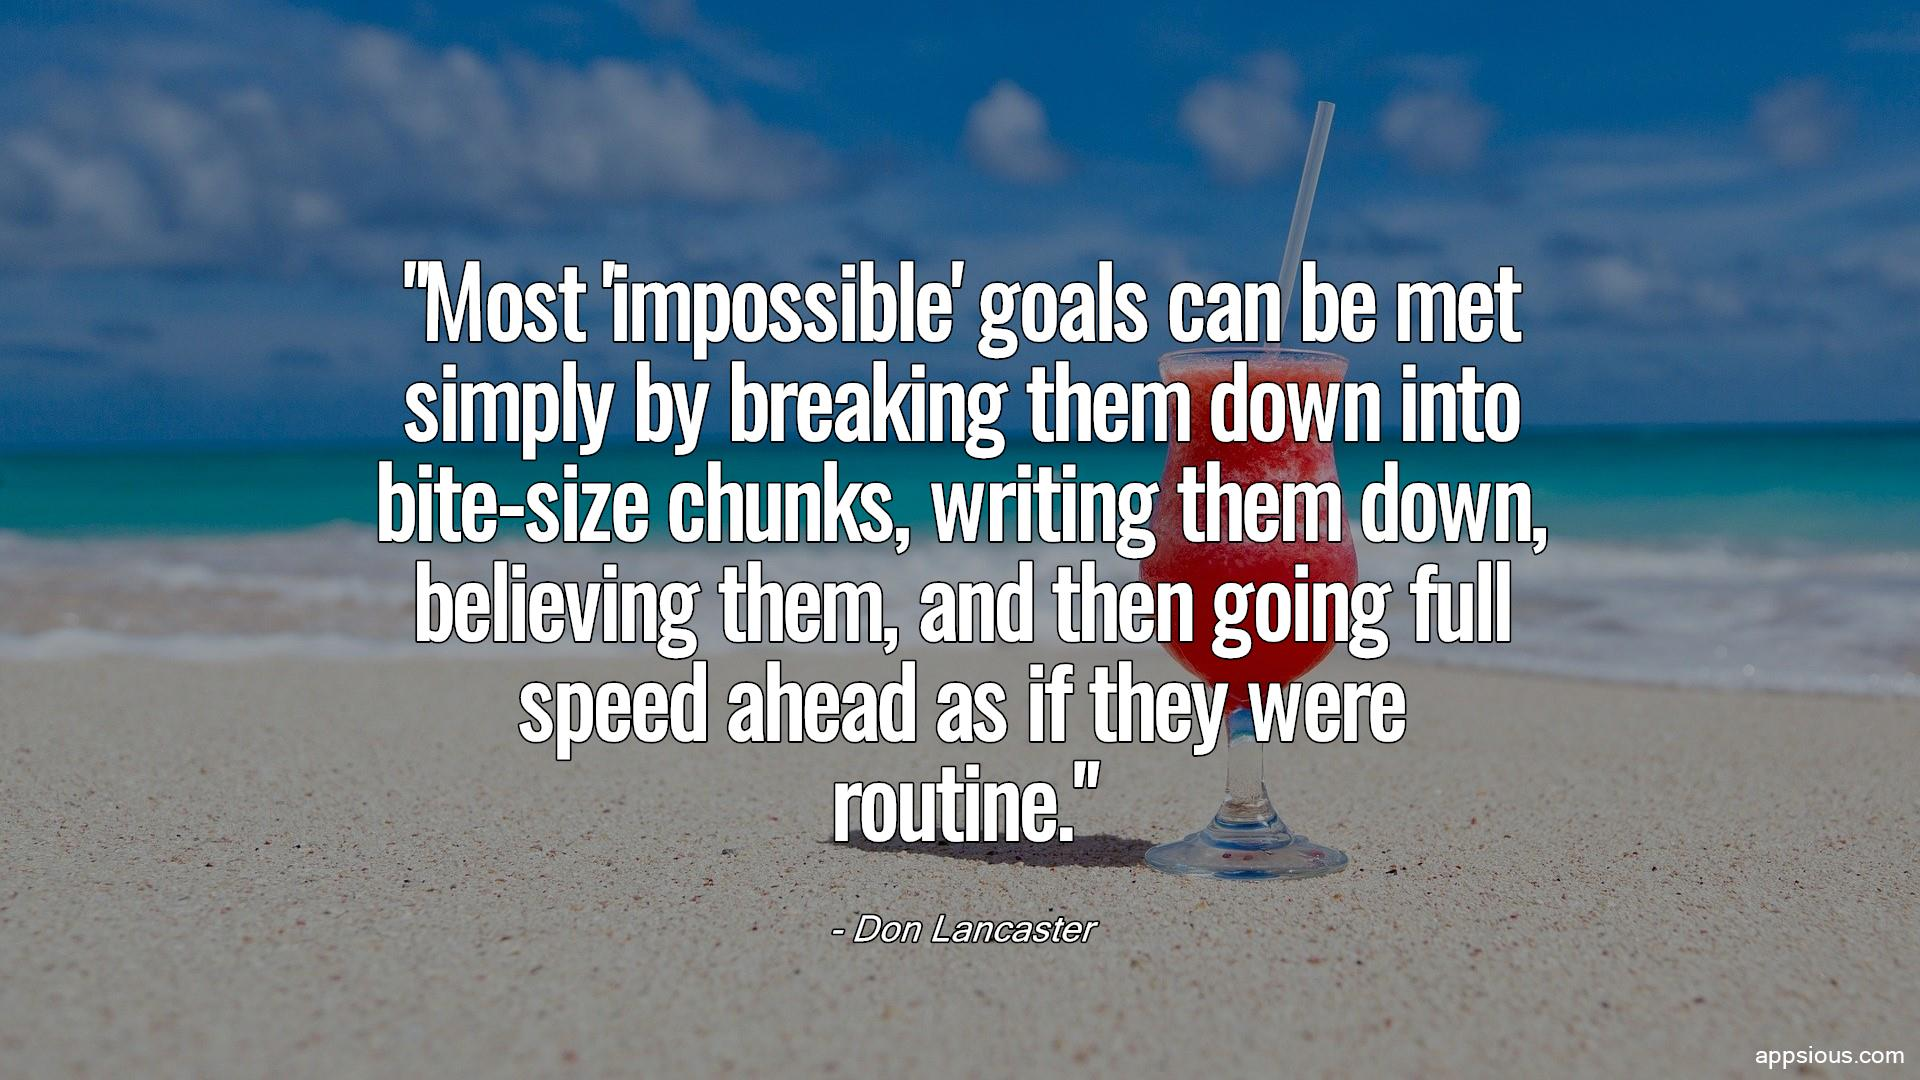 Most 'impossible' goals can be met simply by breaking them down into bite-size chunks, writing them down, believing them, and then going full speed ahead as if they were routine.